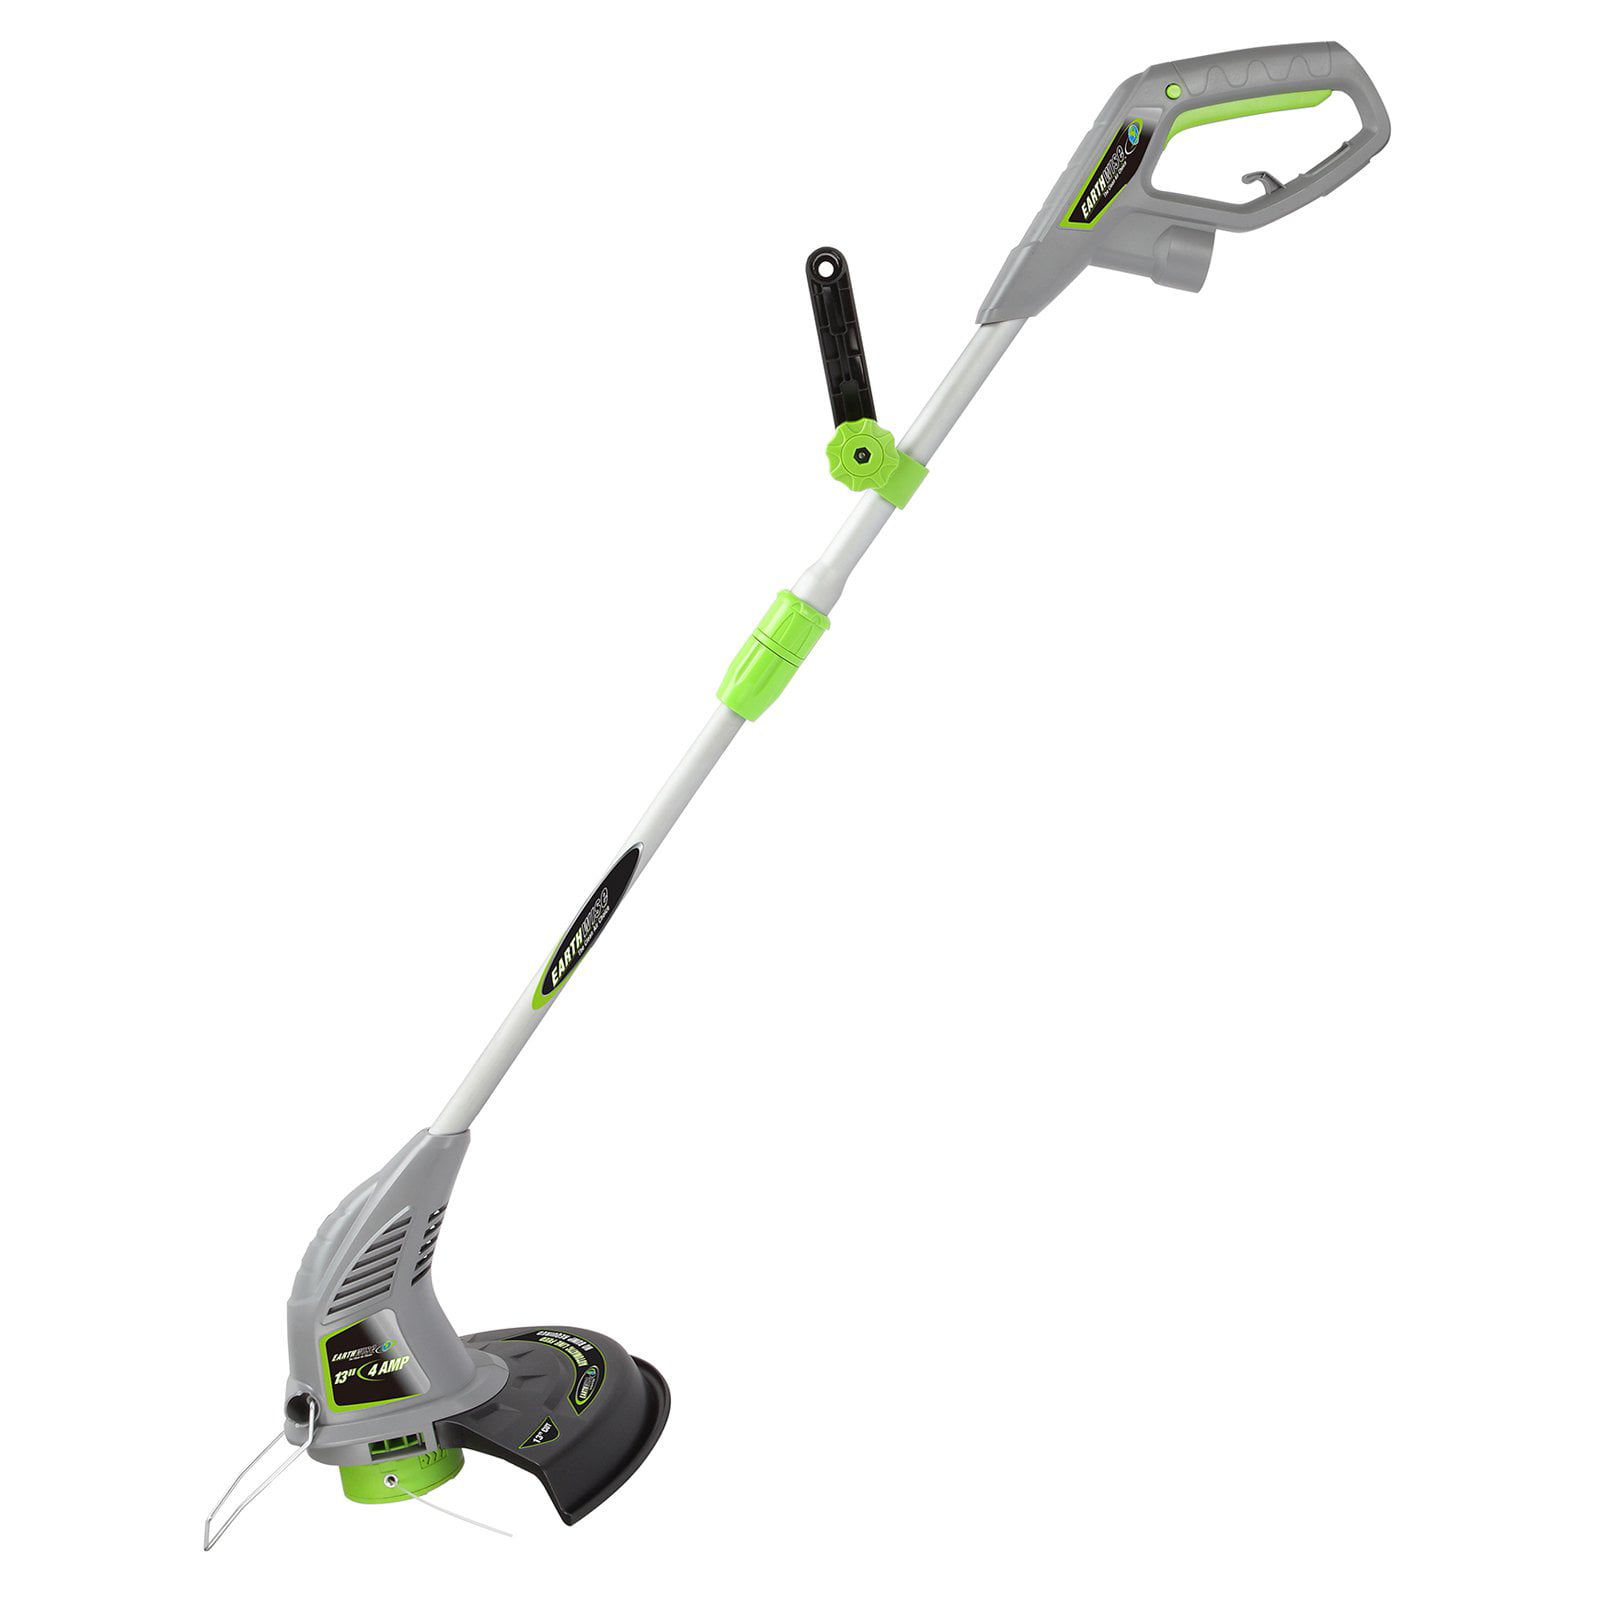 Earthwise ST00113 4 Amp 13-Inch Corded electric Grass Trimmer by Earth Wise